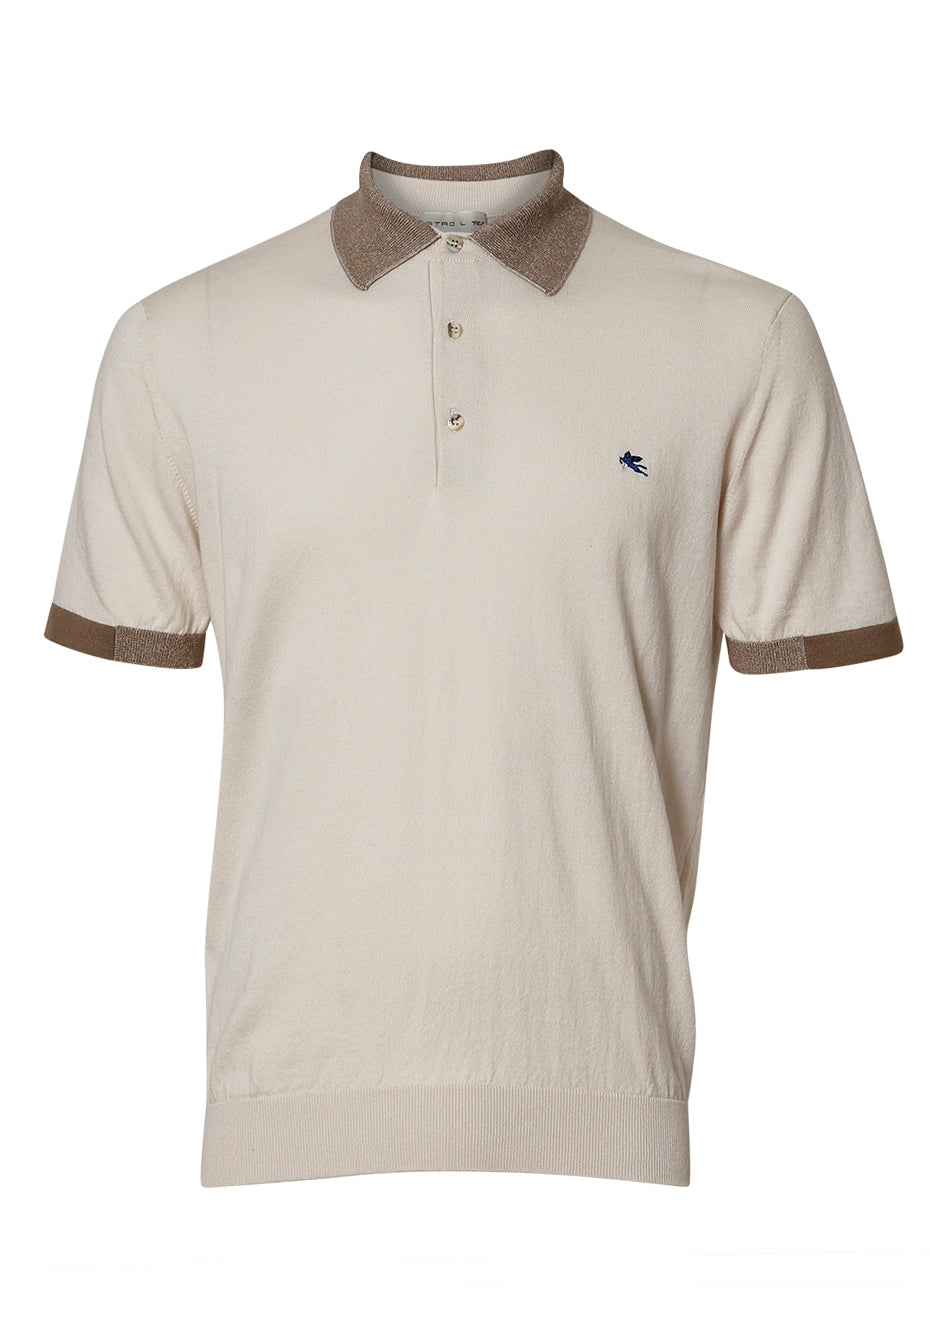 Ivory Knit Polo Shirt